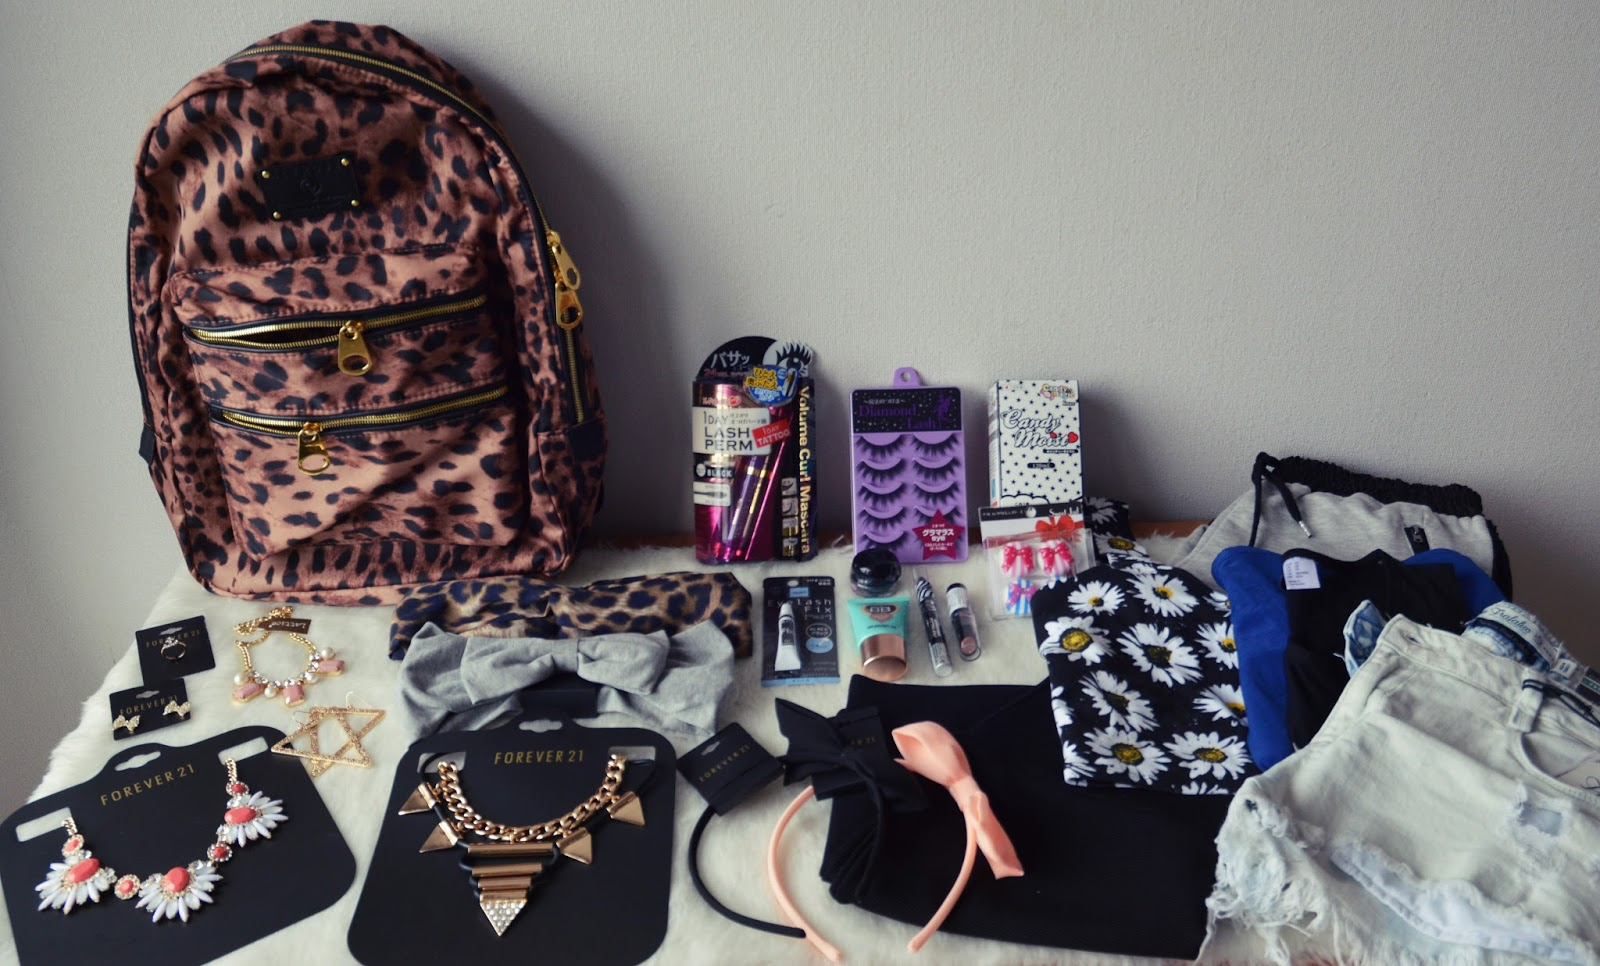 tokyo shopping haul clothes makeup accessories